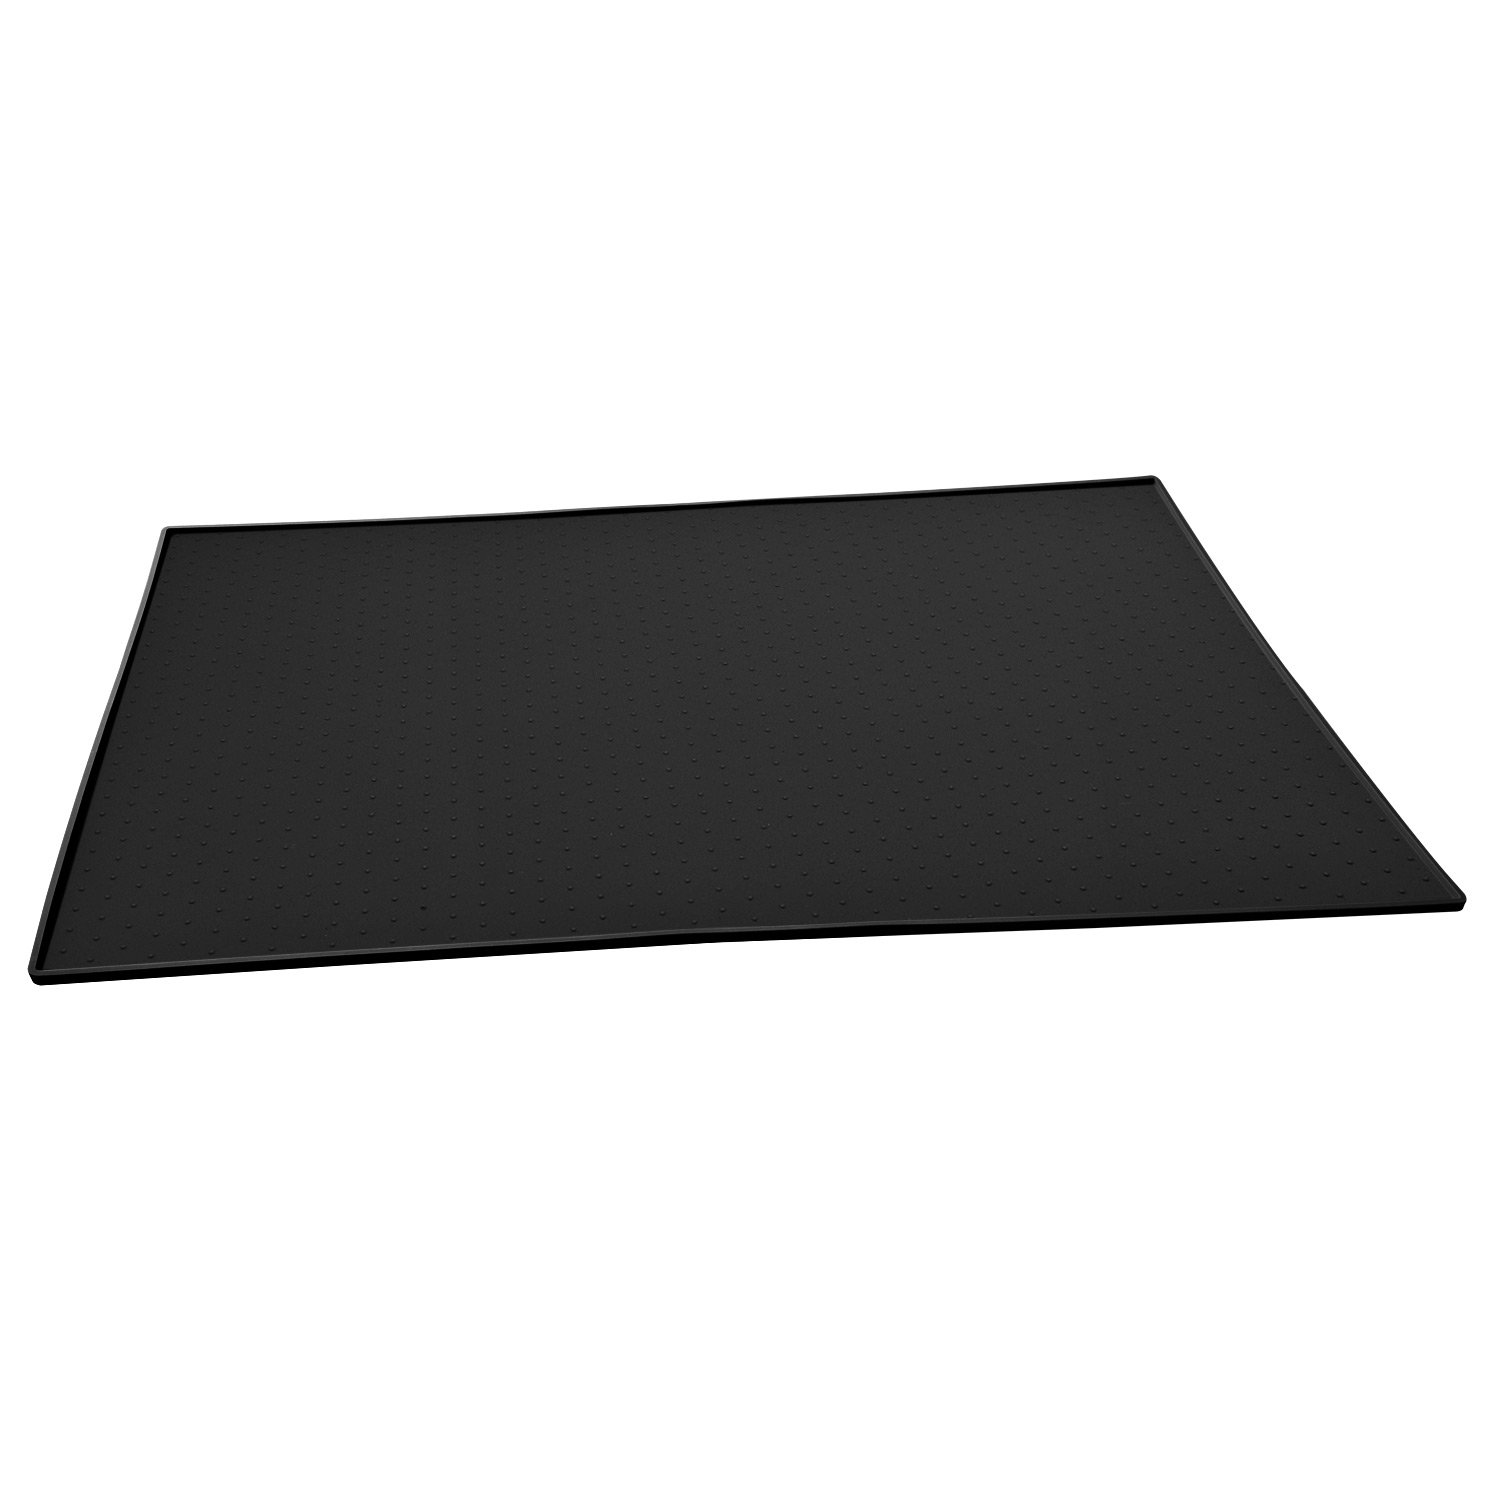 Goldwheat Pet Food Mat Dog Feeding Mat Large Waterproof Non-slip Pets Feeding Mat FDA Grade Silicone Dog Bowl Placemat Pet Feeding Tray For Cats and Dogs 24'' x 16'' Black